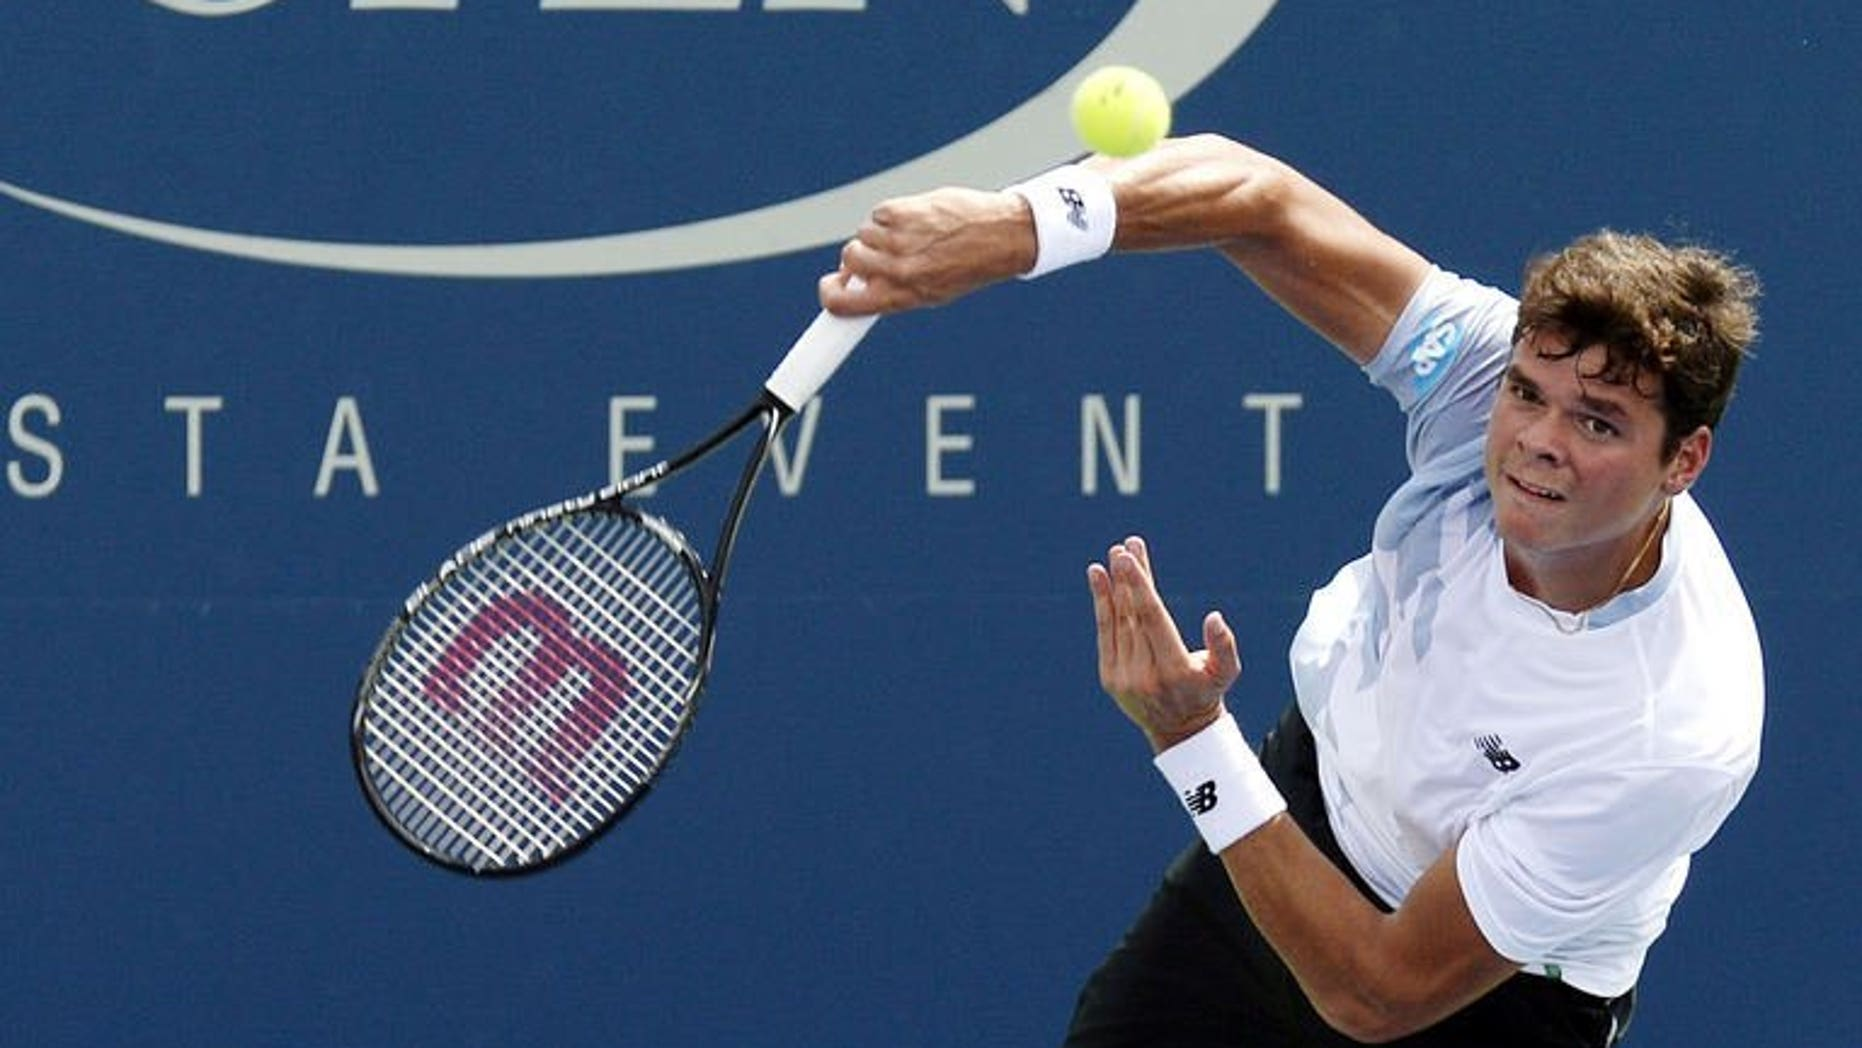 Milos Raonic of Canada, seen in action during the US Open, in New York, on August 31, 2013. World number one Novak Djokovic of Serbia and Raonic will lead their teams, whose rosters were revealed on Tuesday, into a Davis Cup semi-final showdown next week.